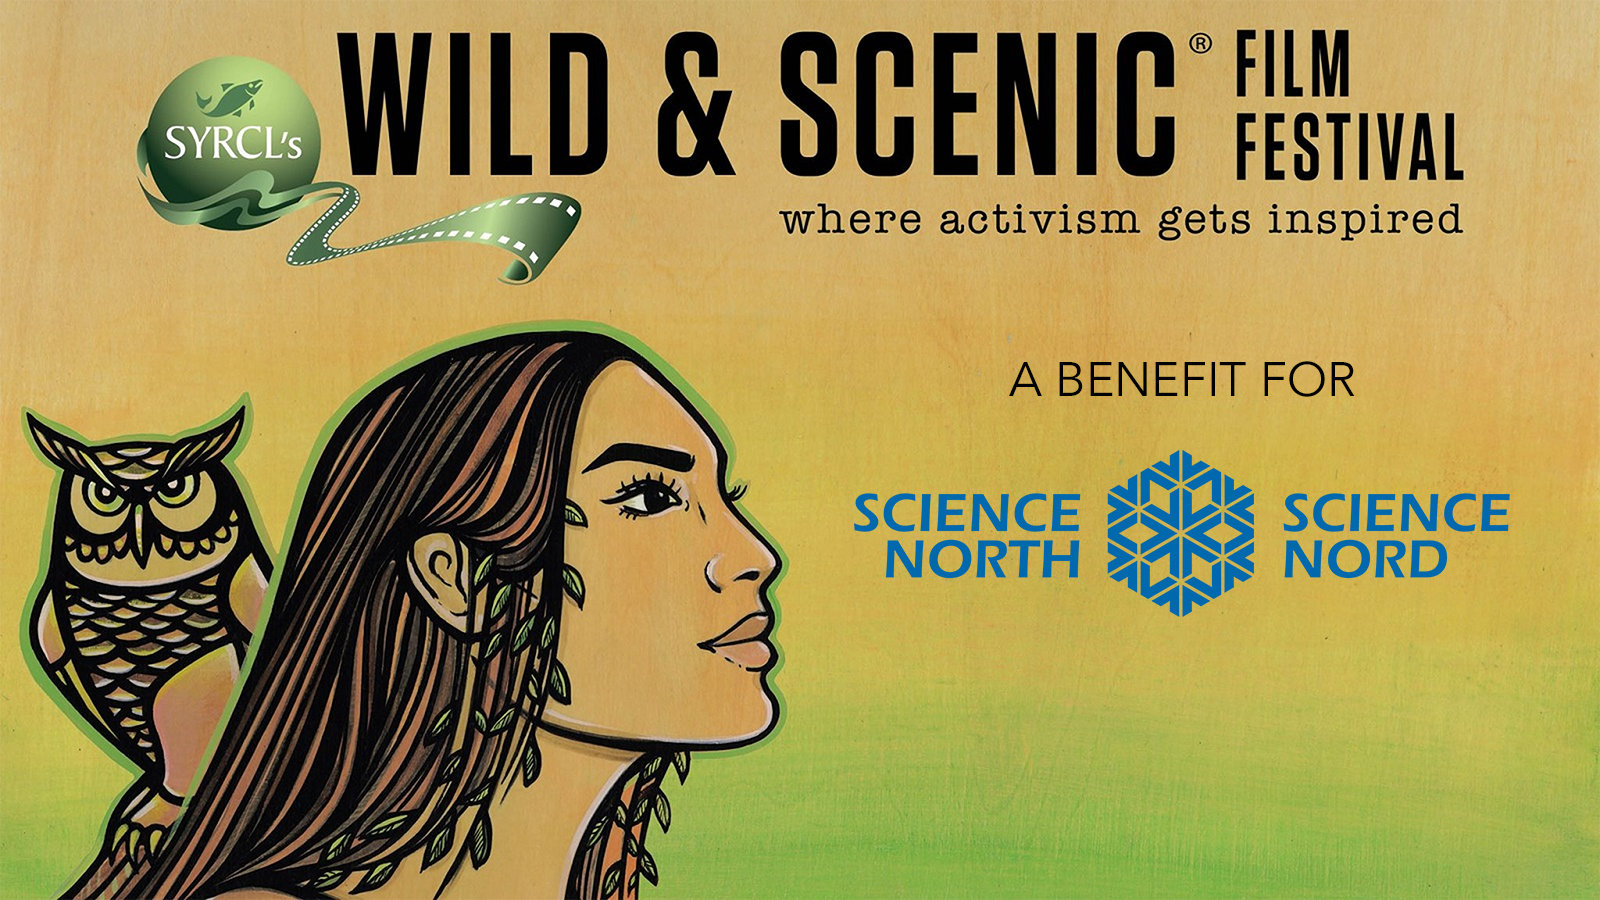 Science North Presents SYRCL's Wild & Scenic Film Festival On Tour